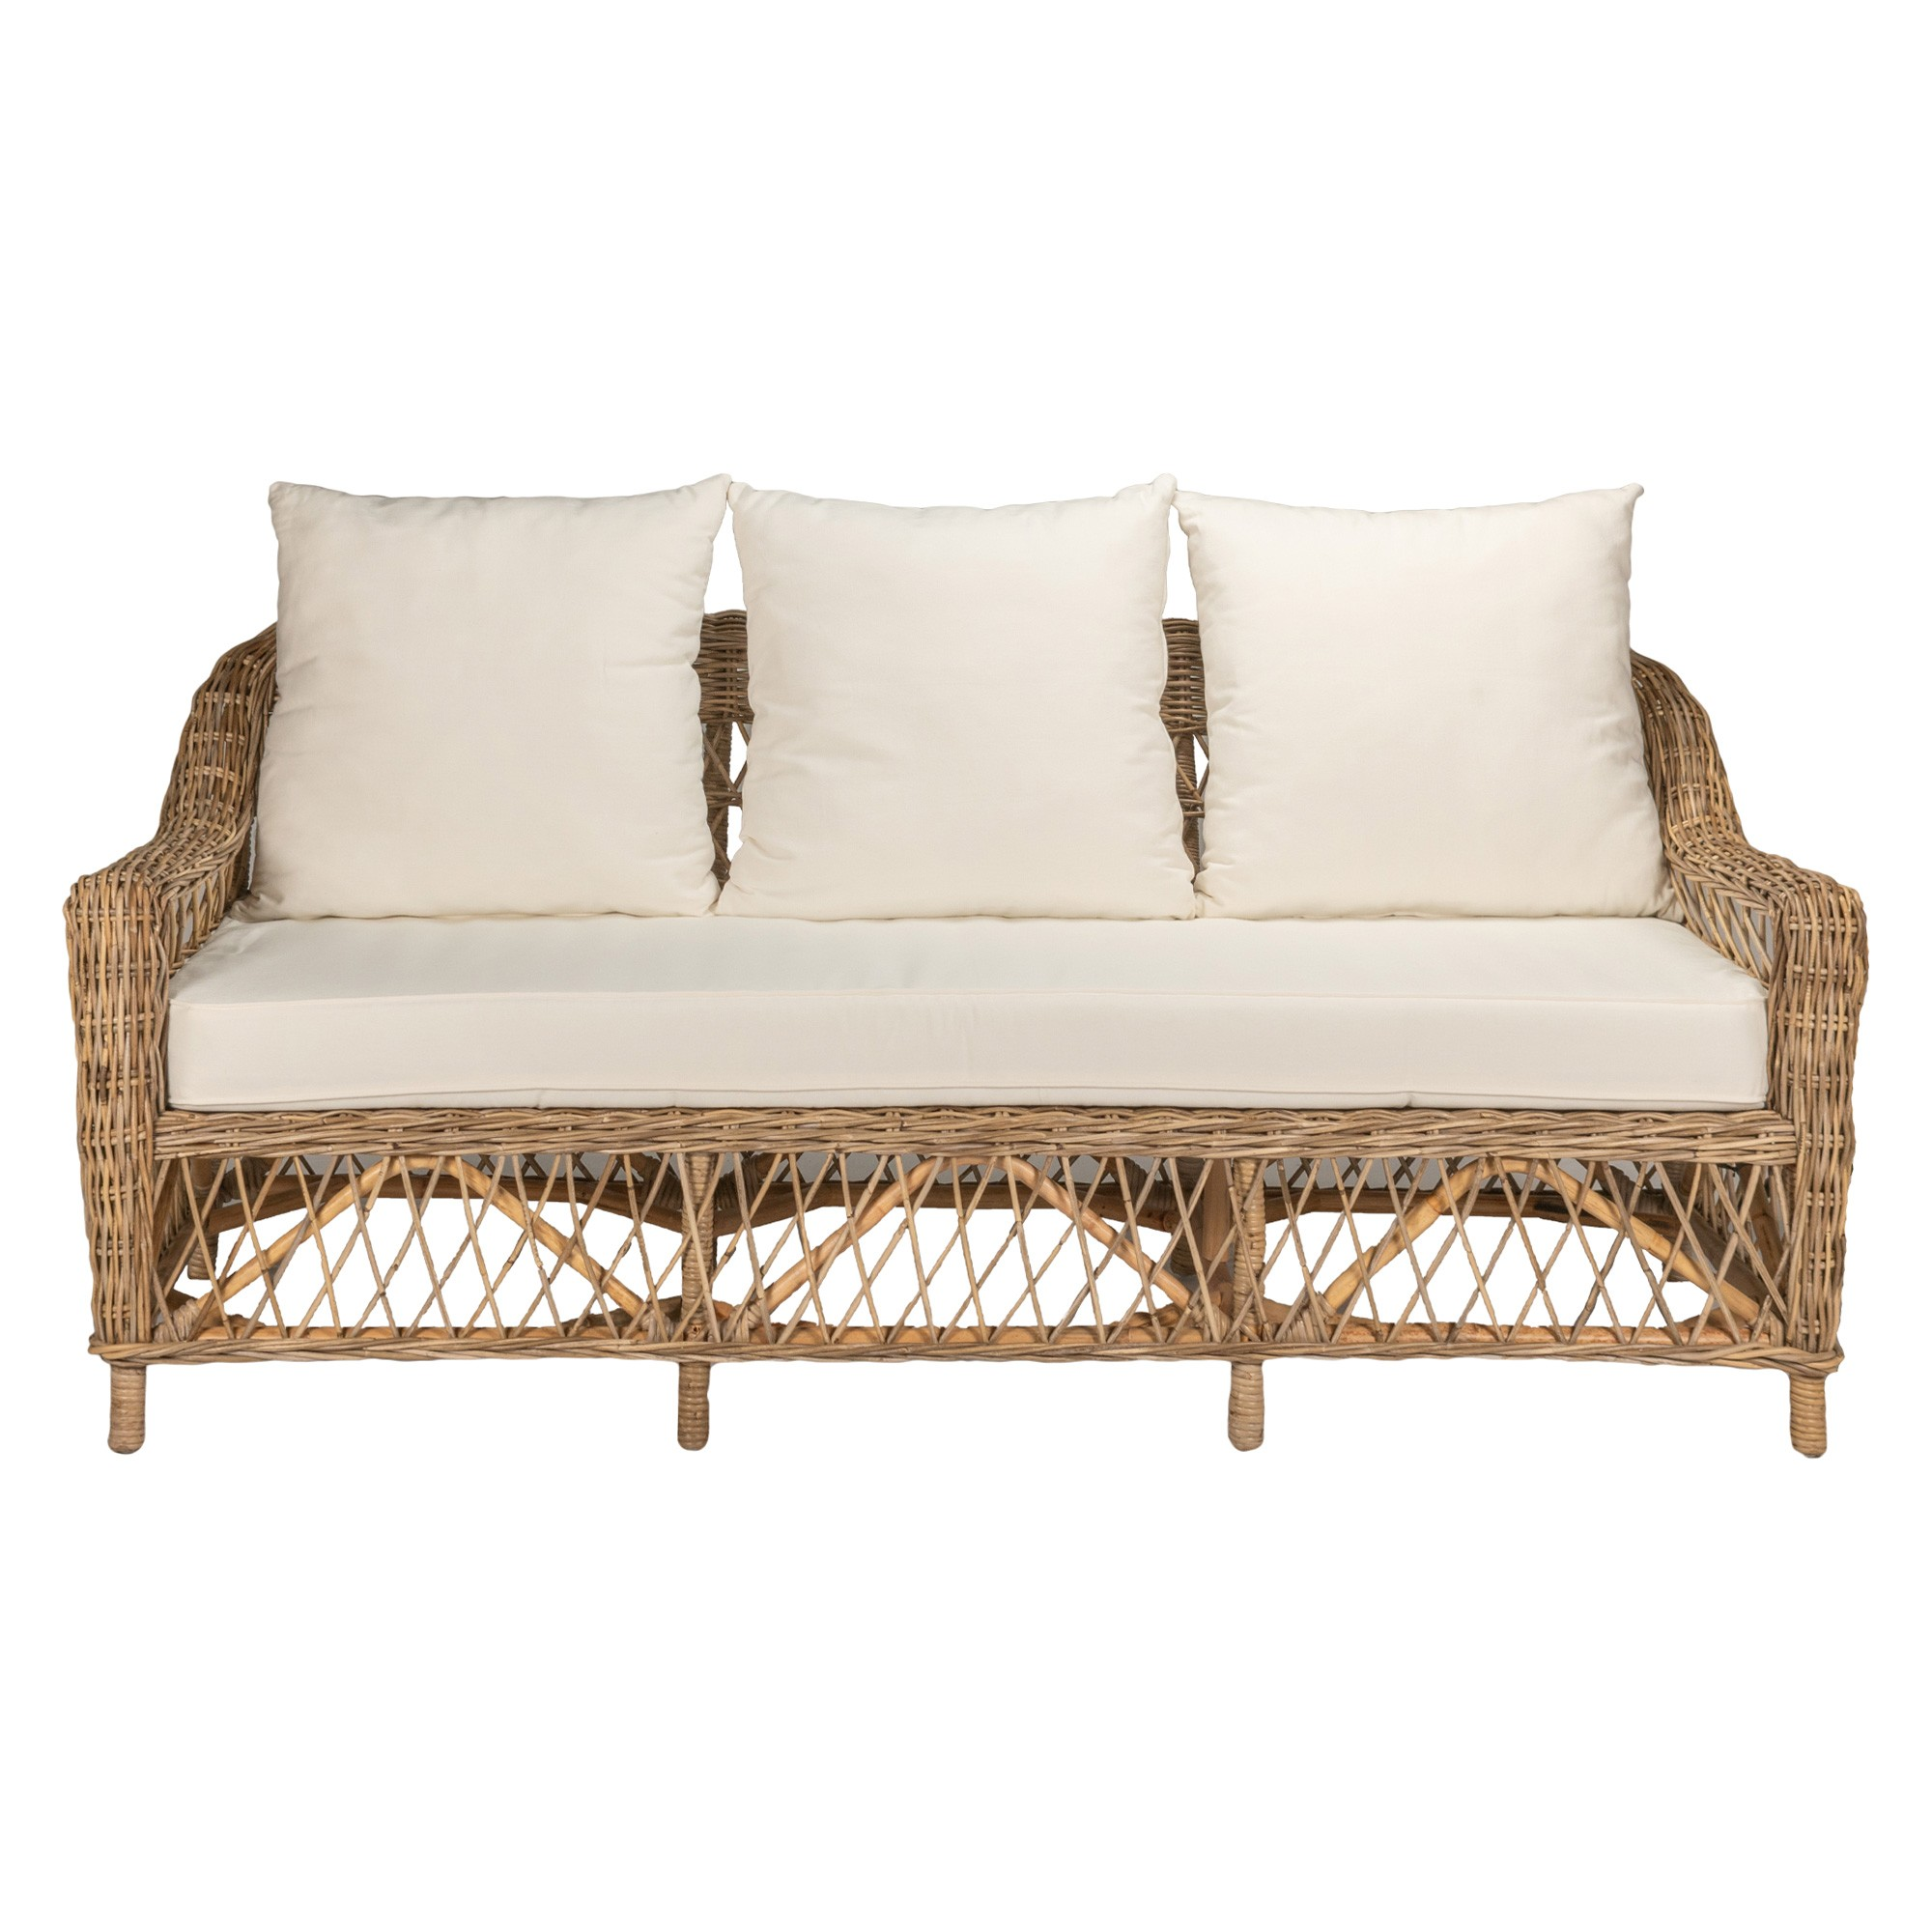 Nassau Rattan Sofa, 3 Seater, Natural / Oatmeal